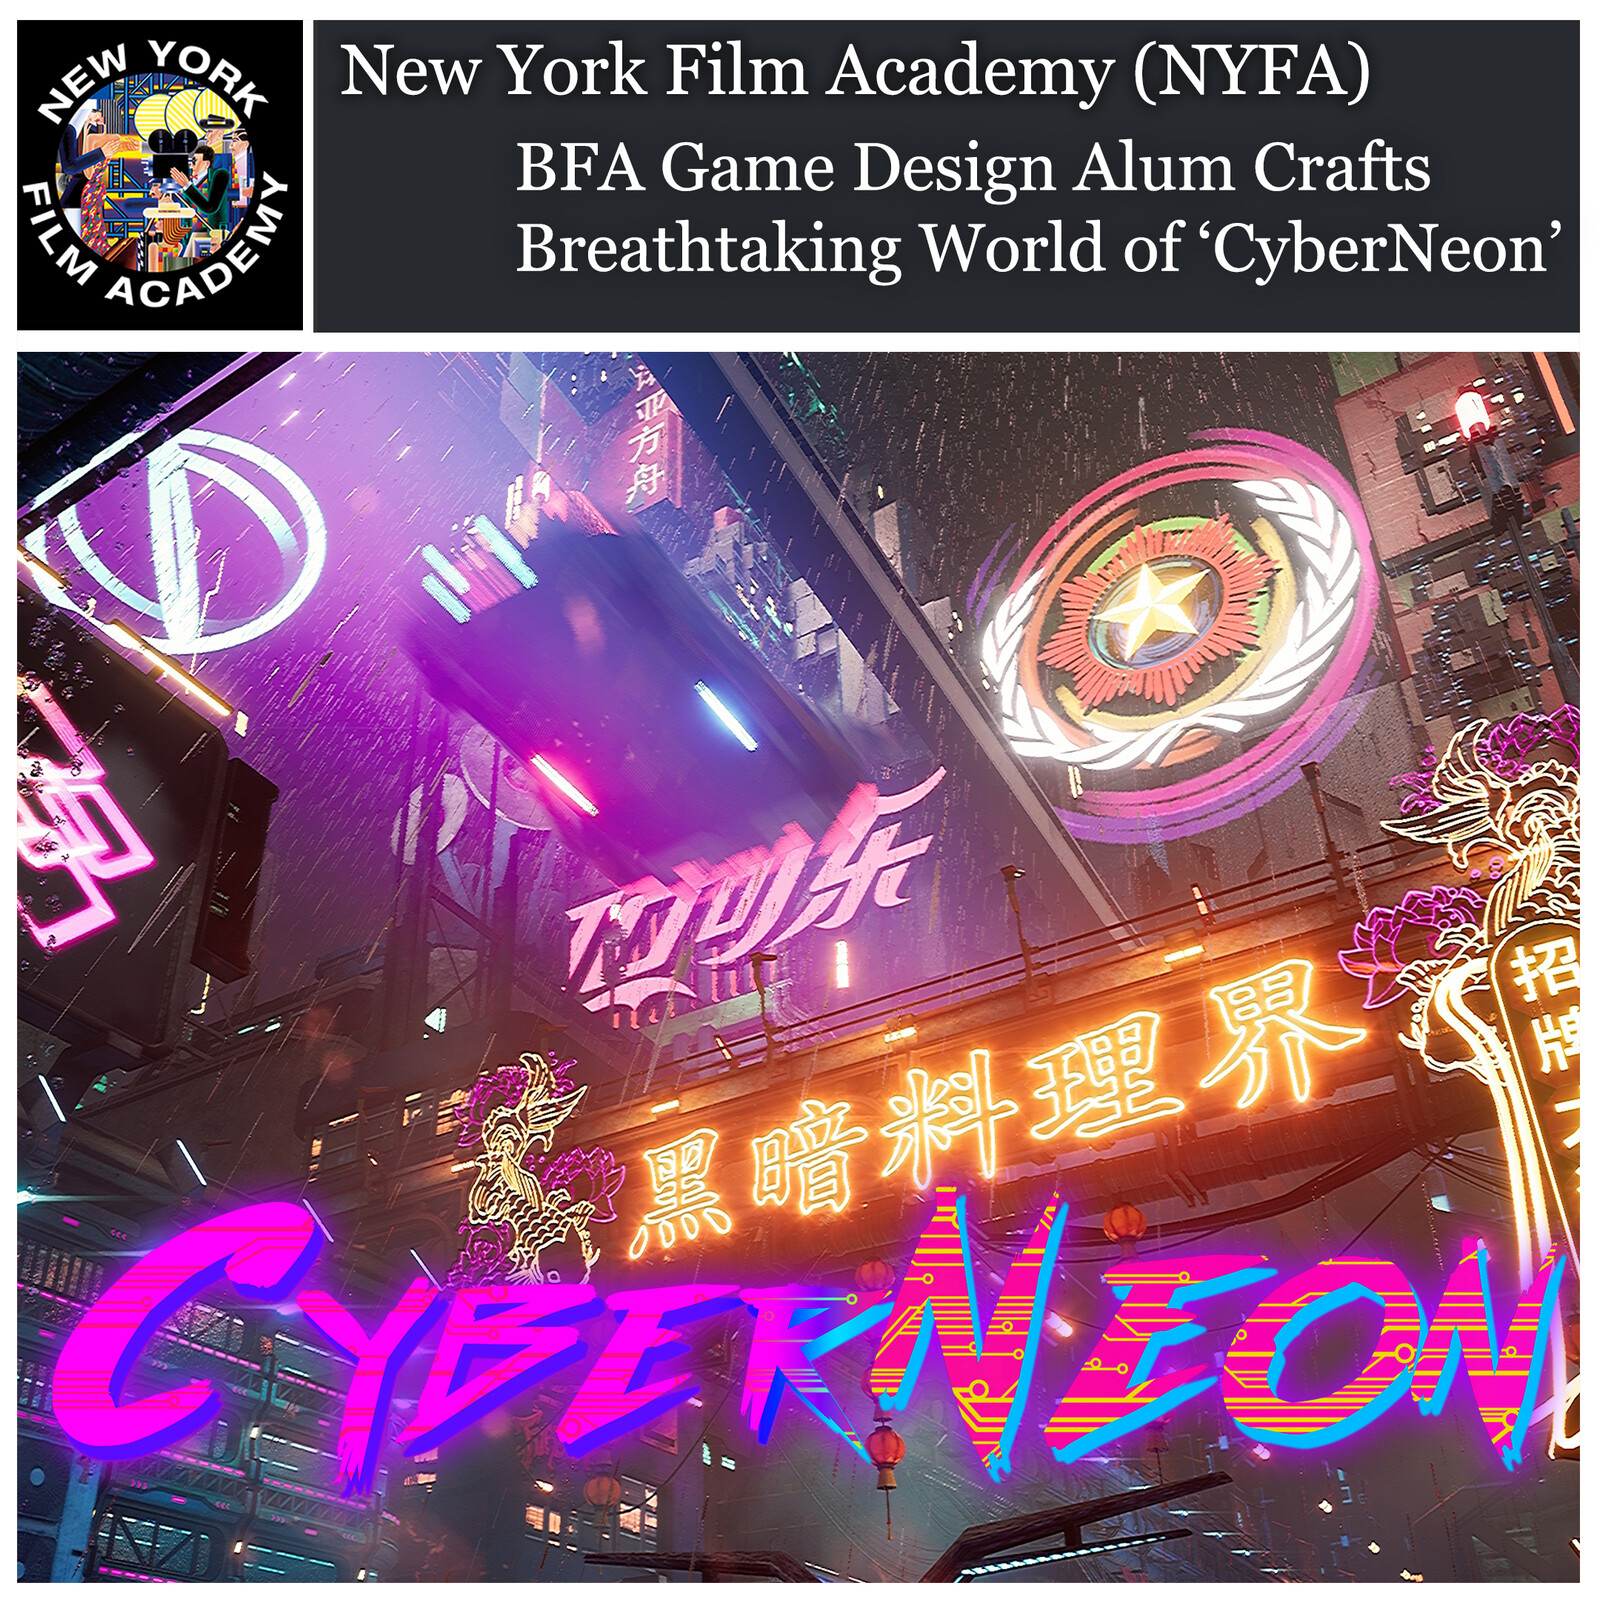 New York Film Academy BFA Game Design Alum Crafts Breathtaking World of 'CyberNeon' by Scott Rogers